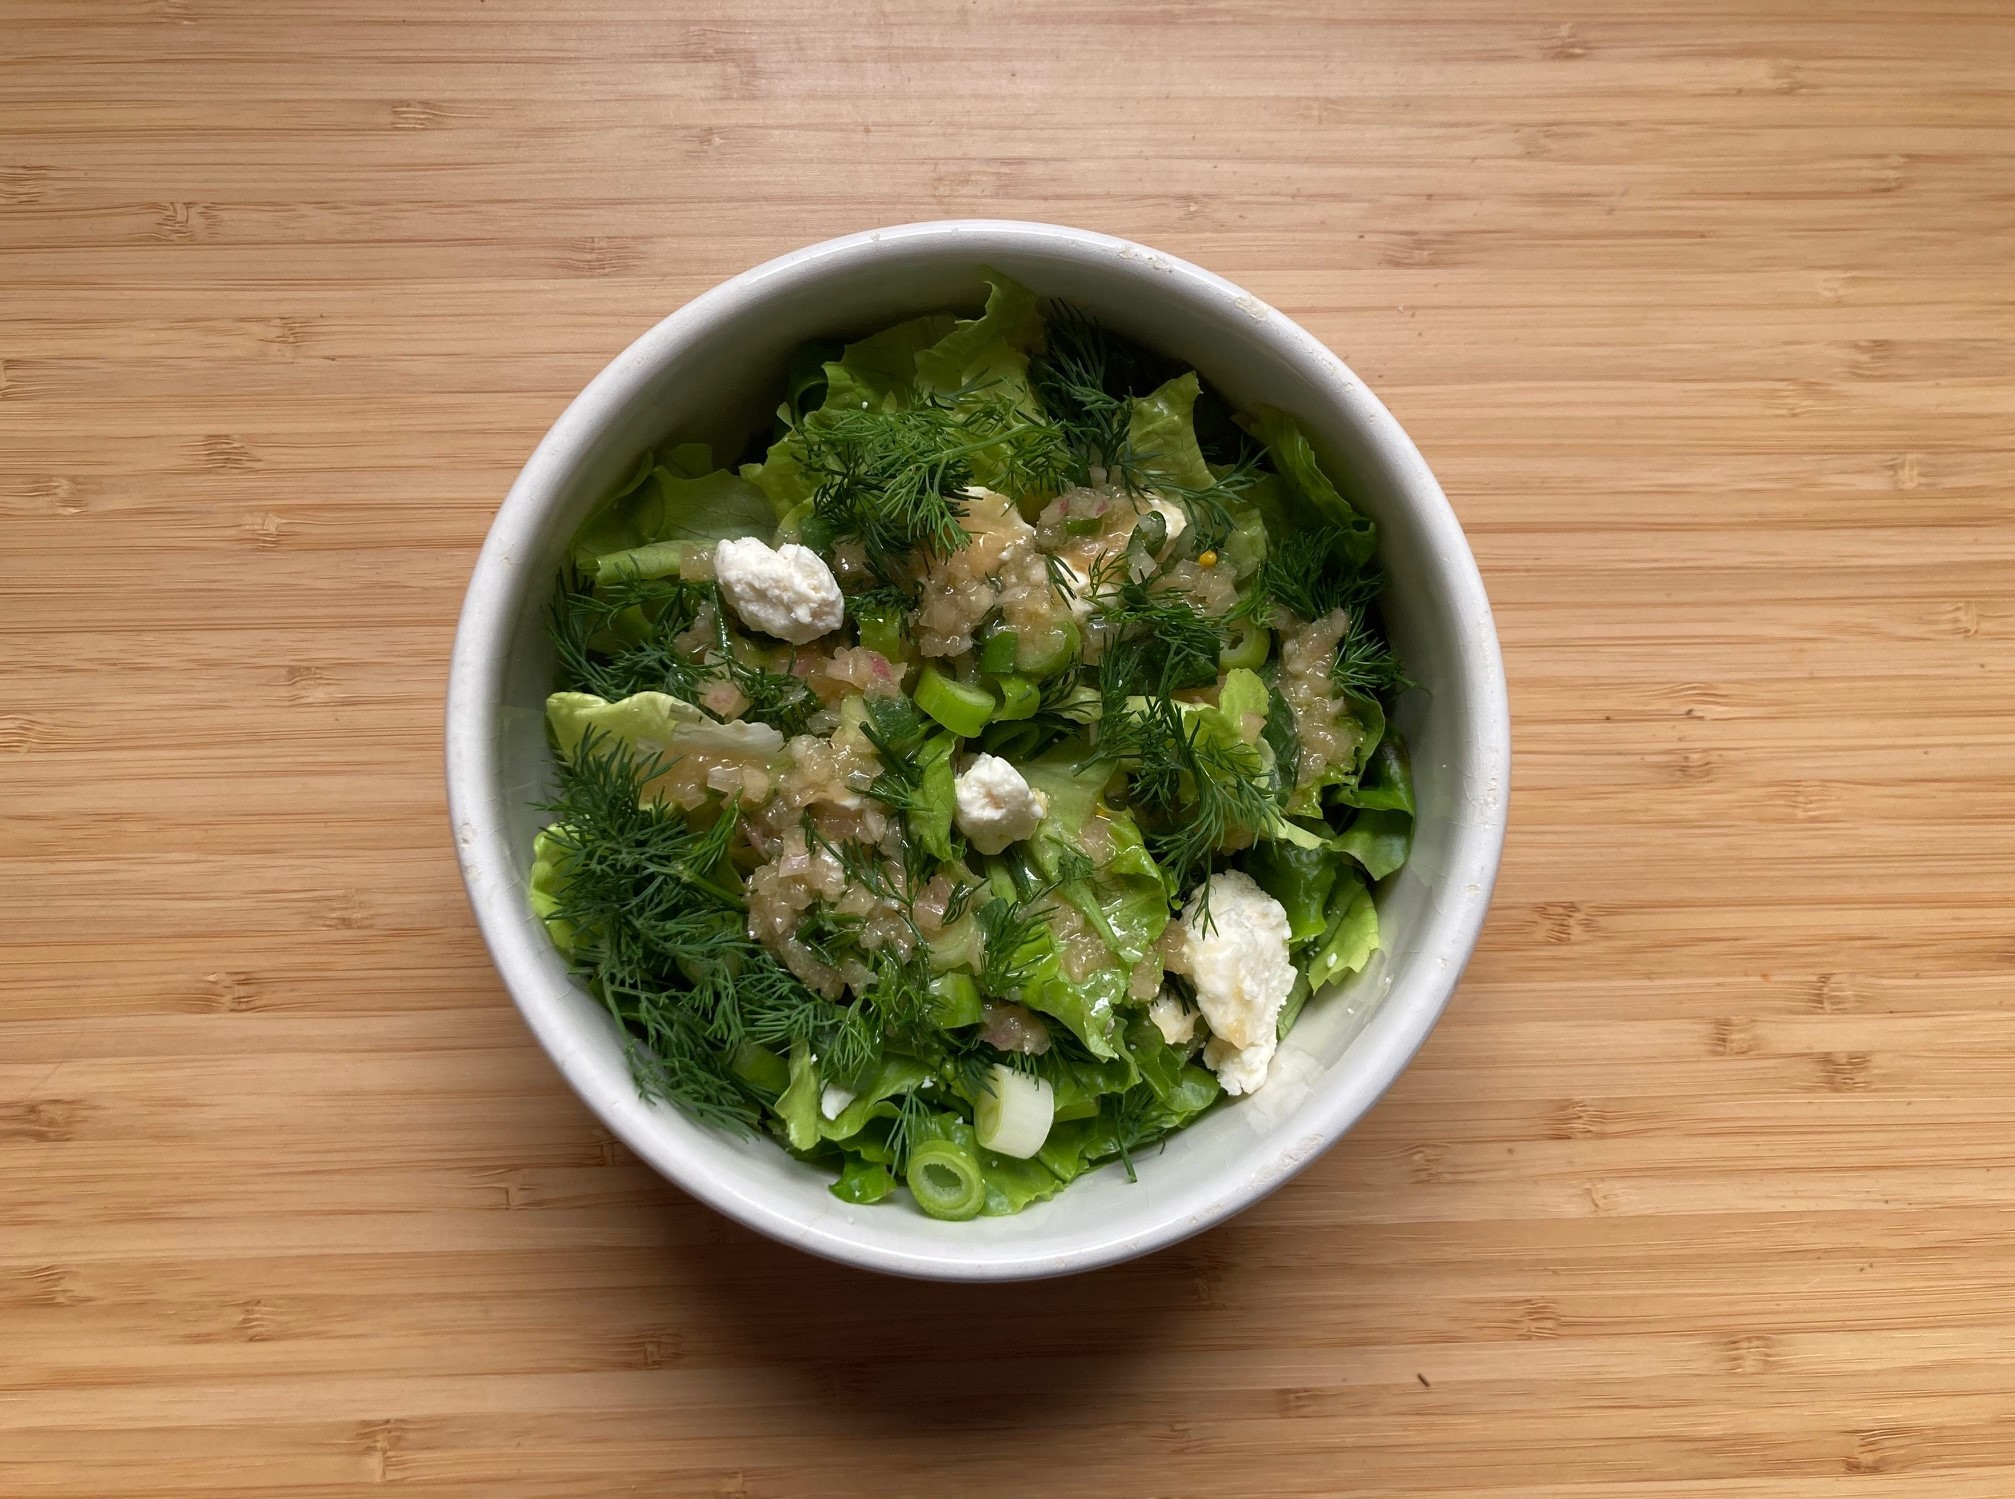 A very green salad with scallion, feta cheese, and dill is topped with sherry vinaigrette.